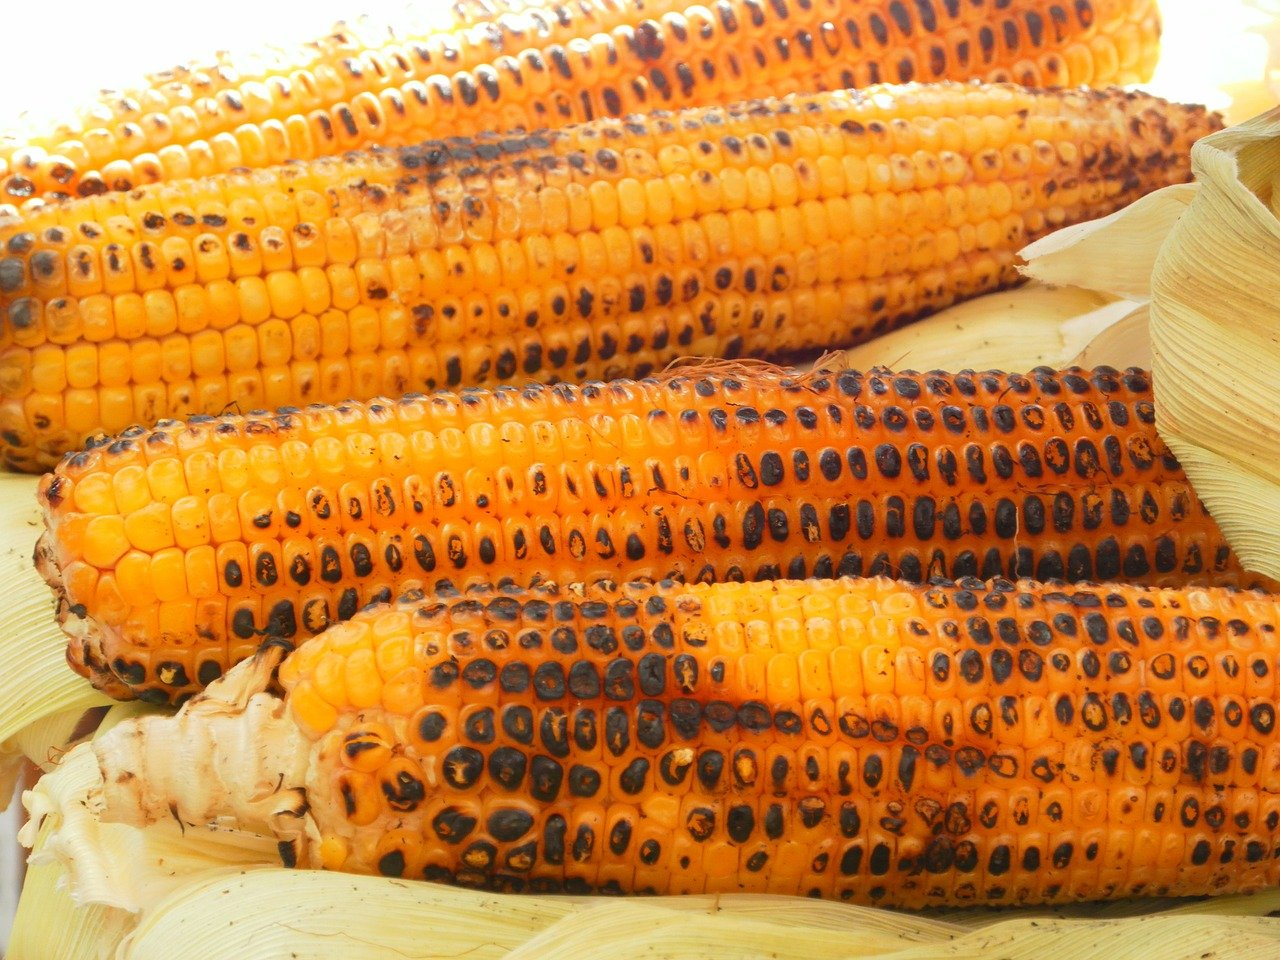 Grill Roasted Corn on the Cob image